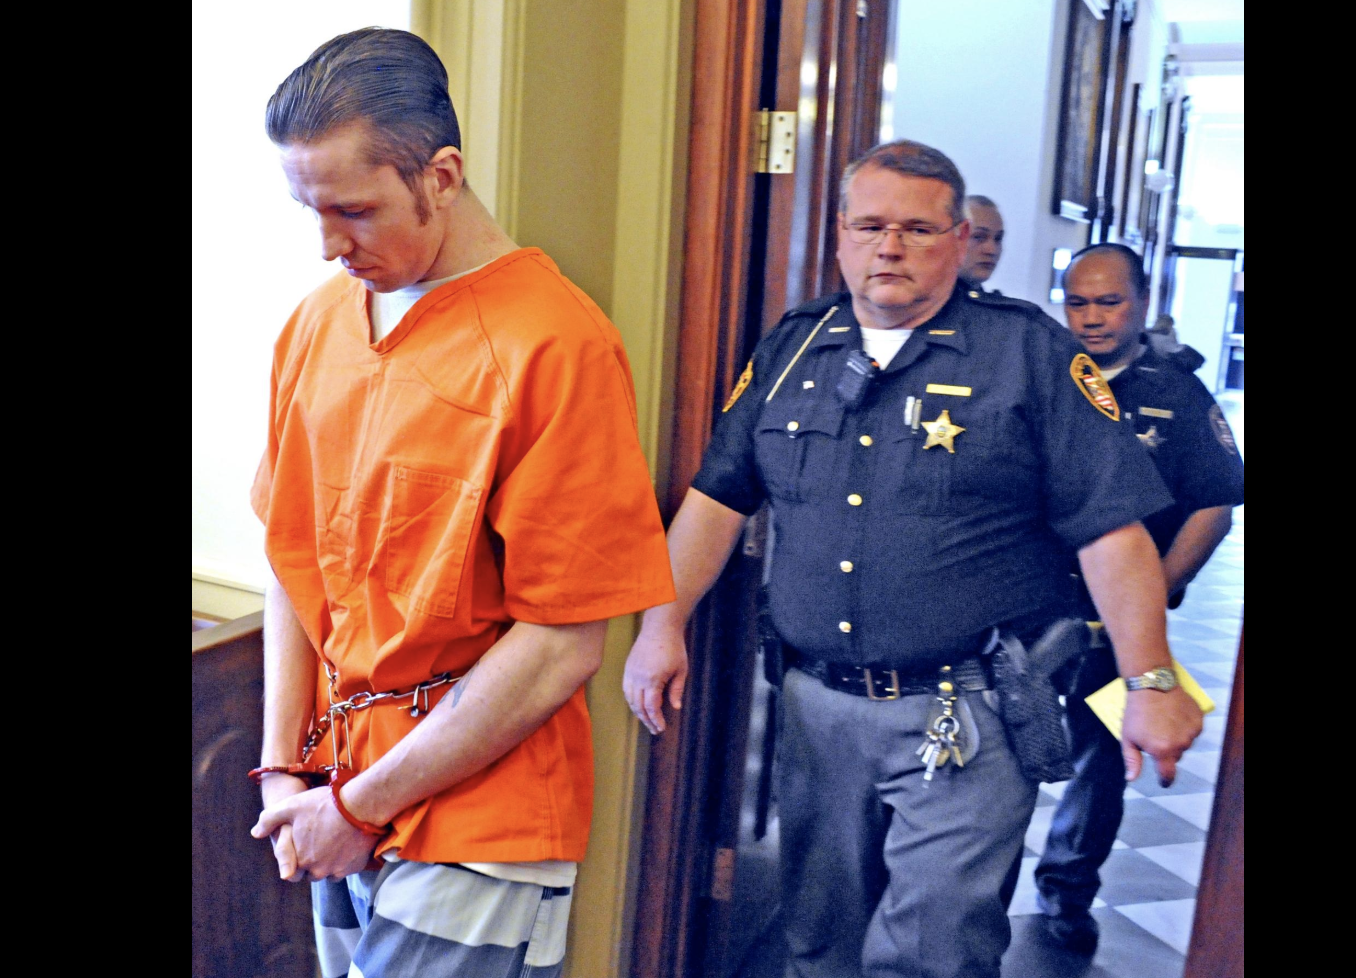 29 Year Old Orrville Man Sentenced To 15 Years To Life For Rape Of 5 Year Old Girl In 2017